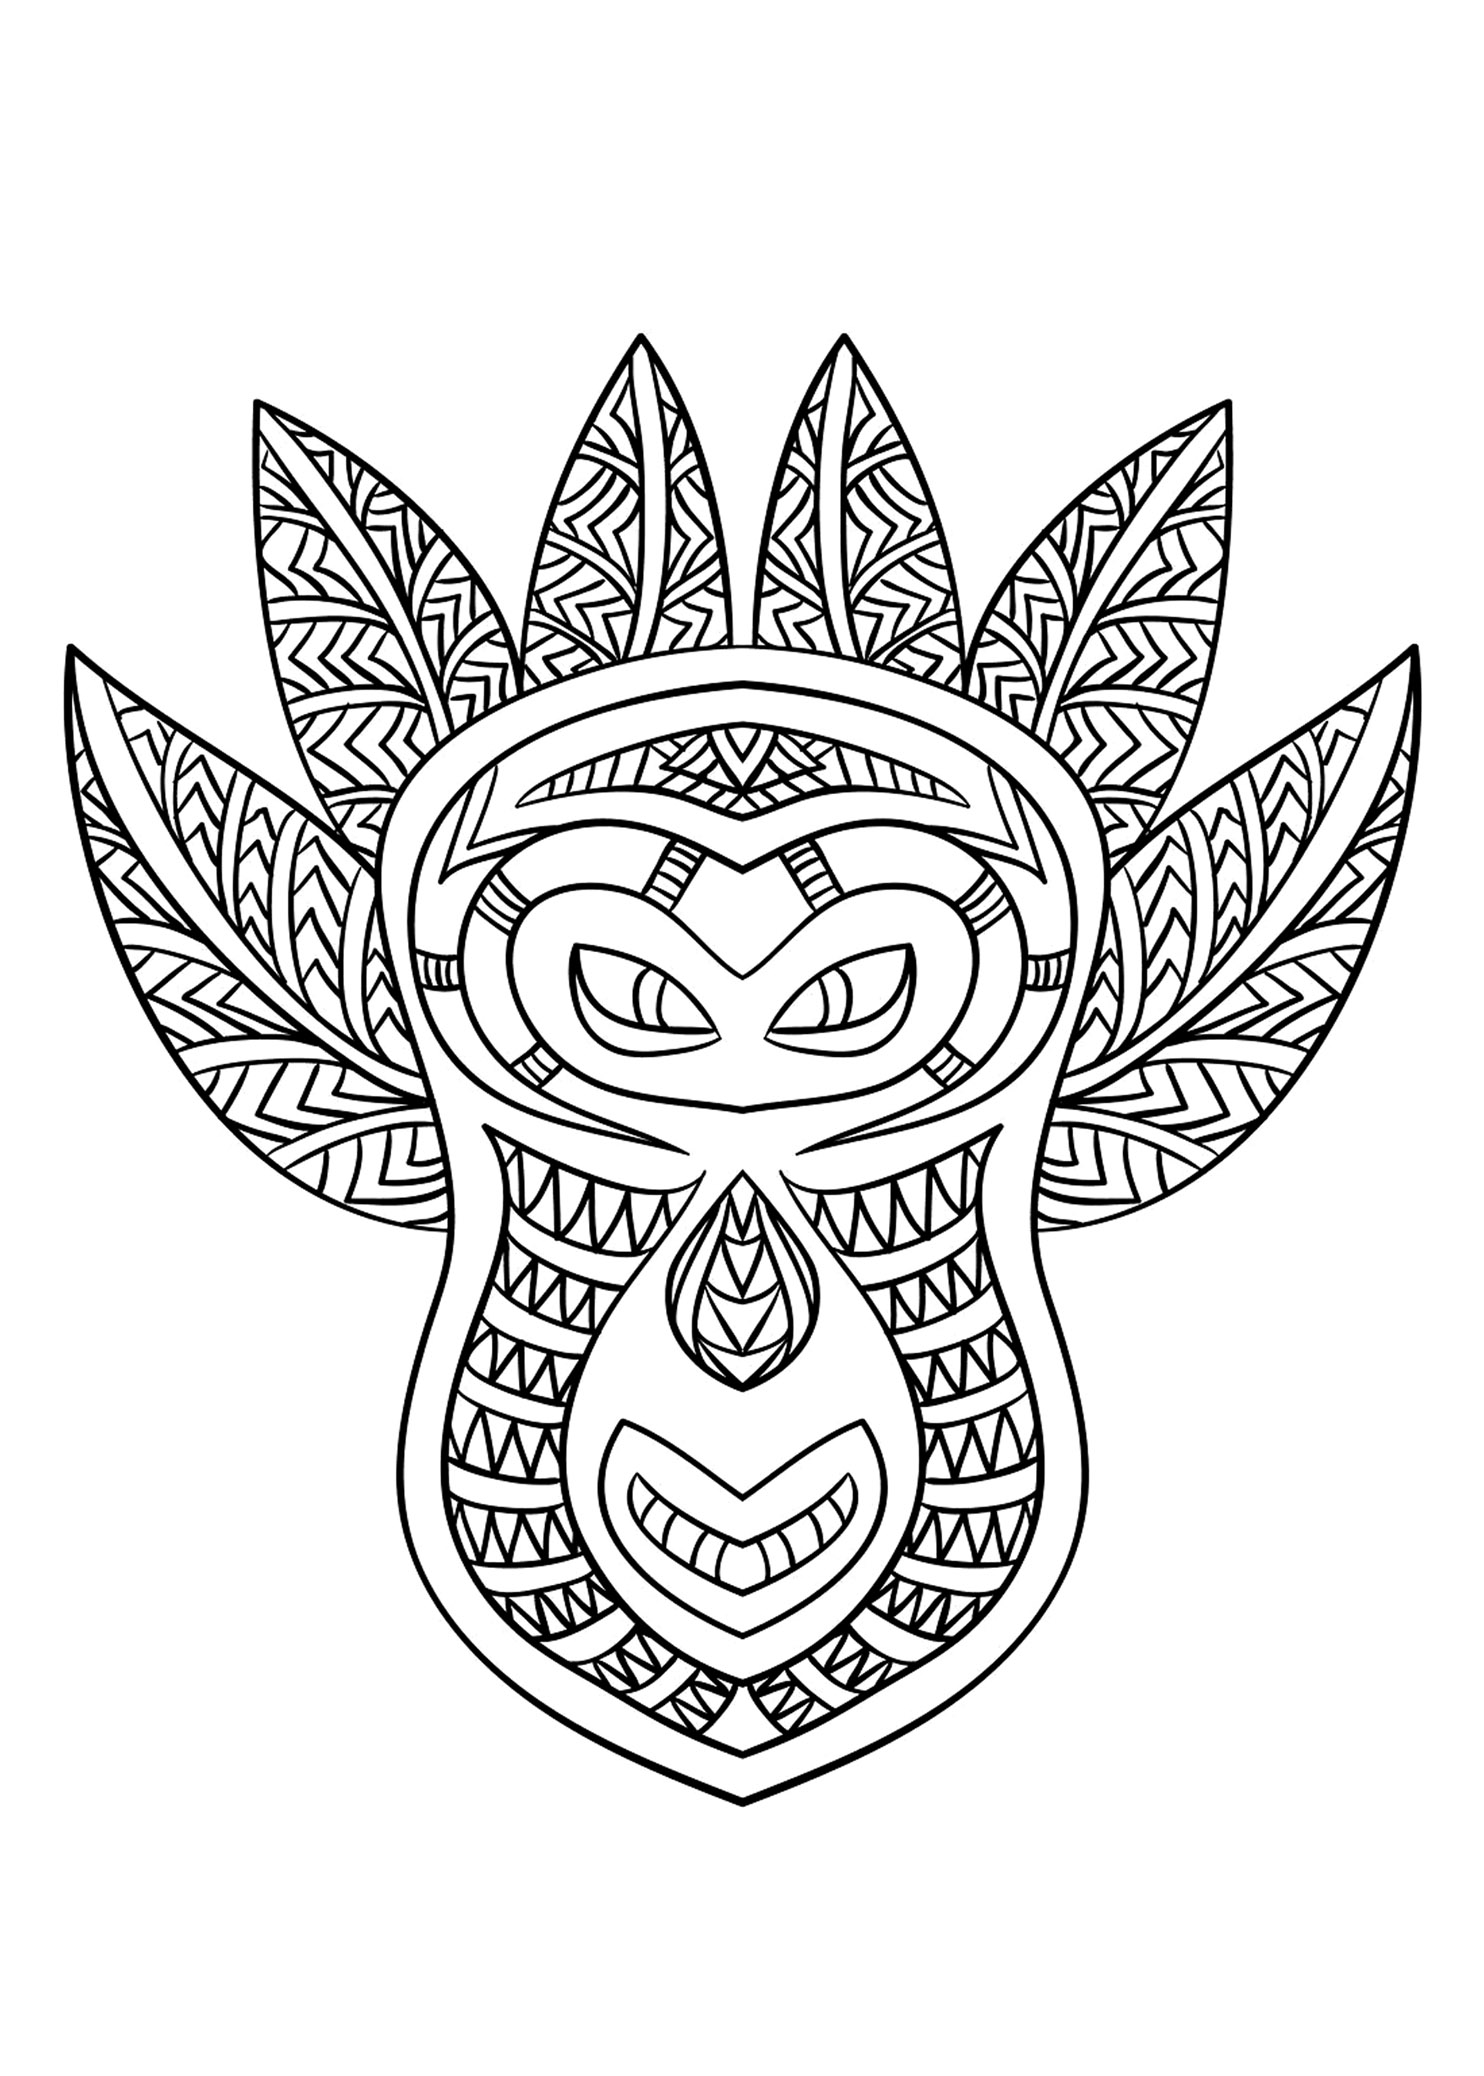 african mask coloring sheets african mask coloring page coloring home sheets african mask coloring